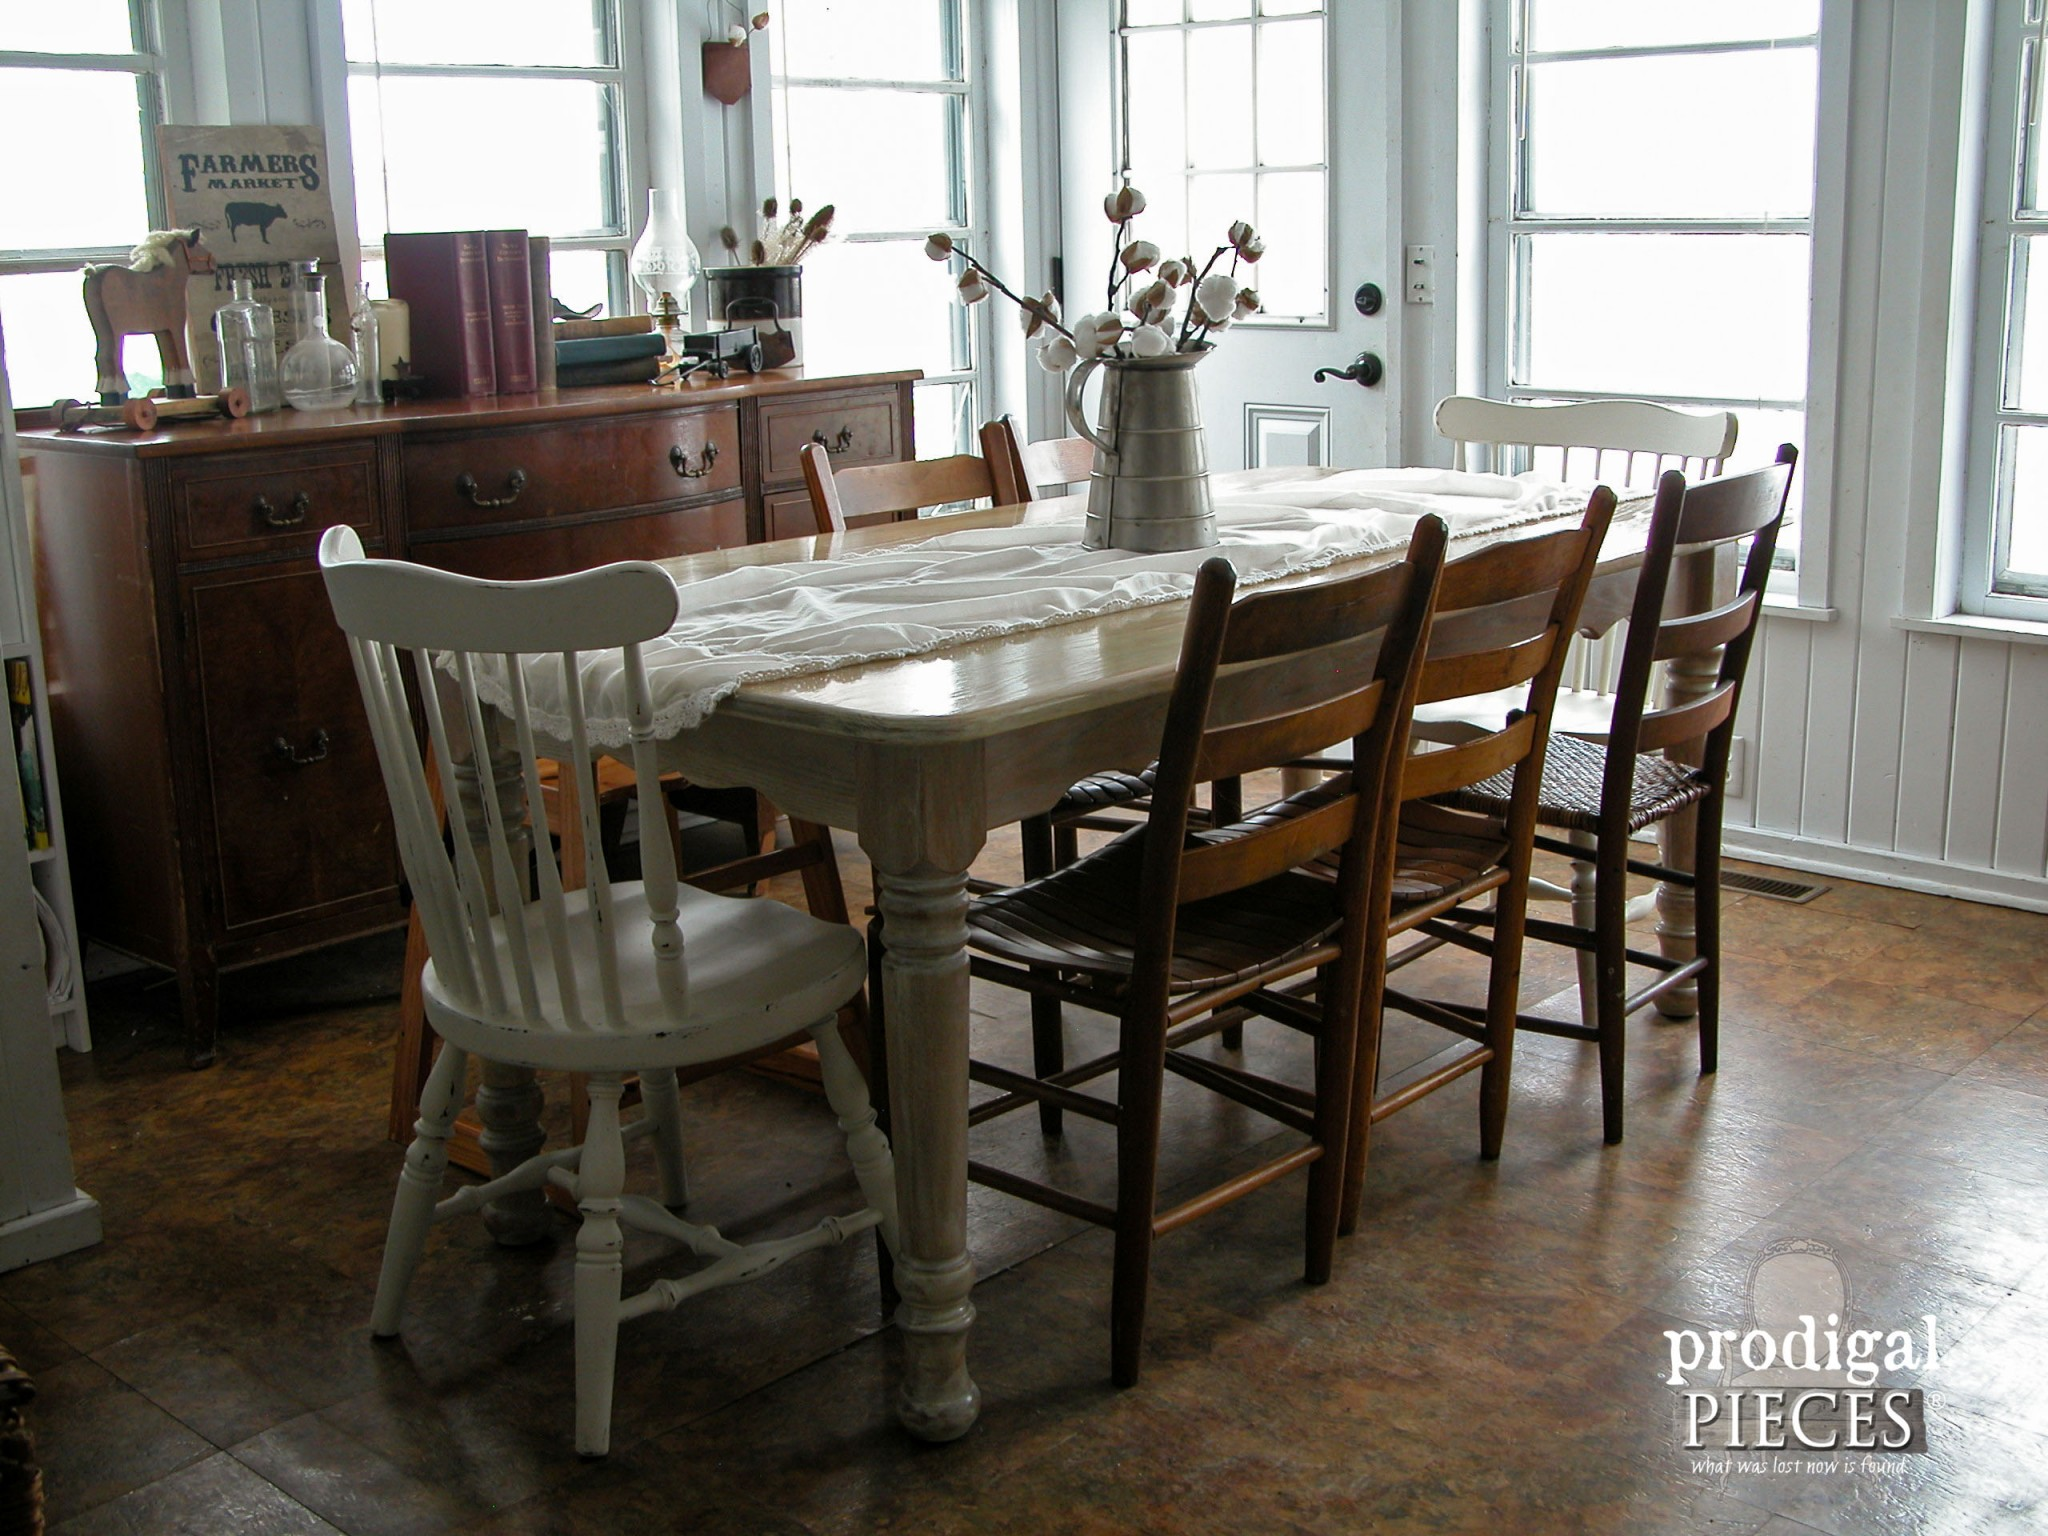 Whitewashed (or Limewashed) Farmhouse Table by Prodigal Pieces | www.prodigalpieces.com